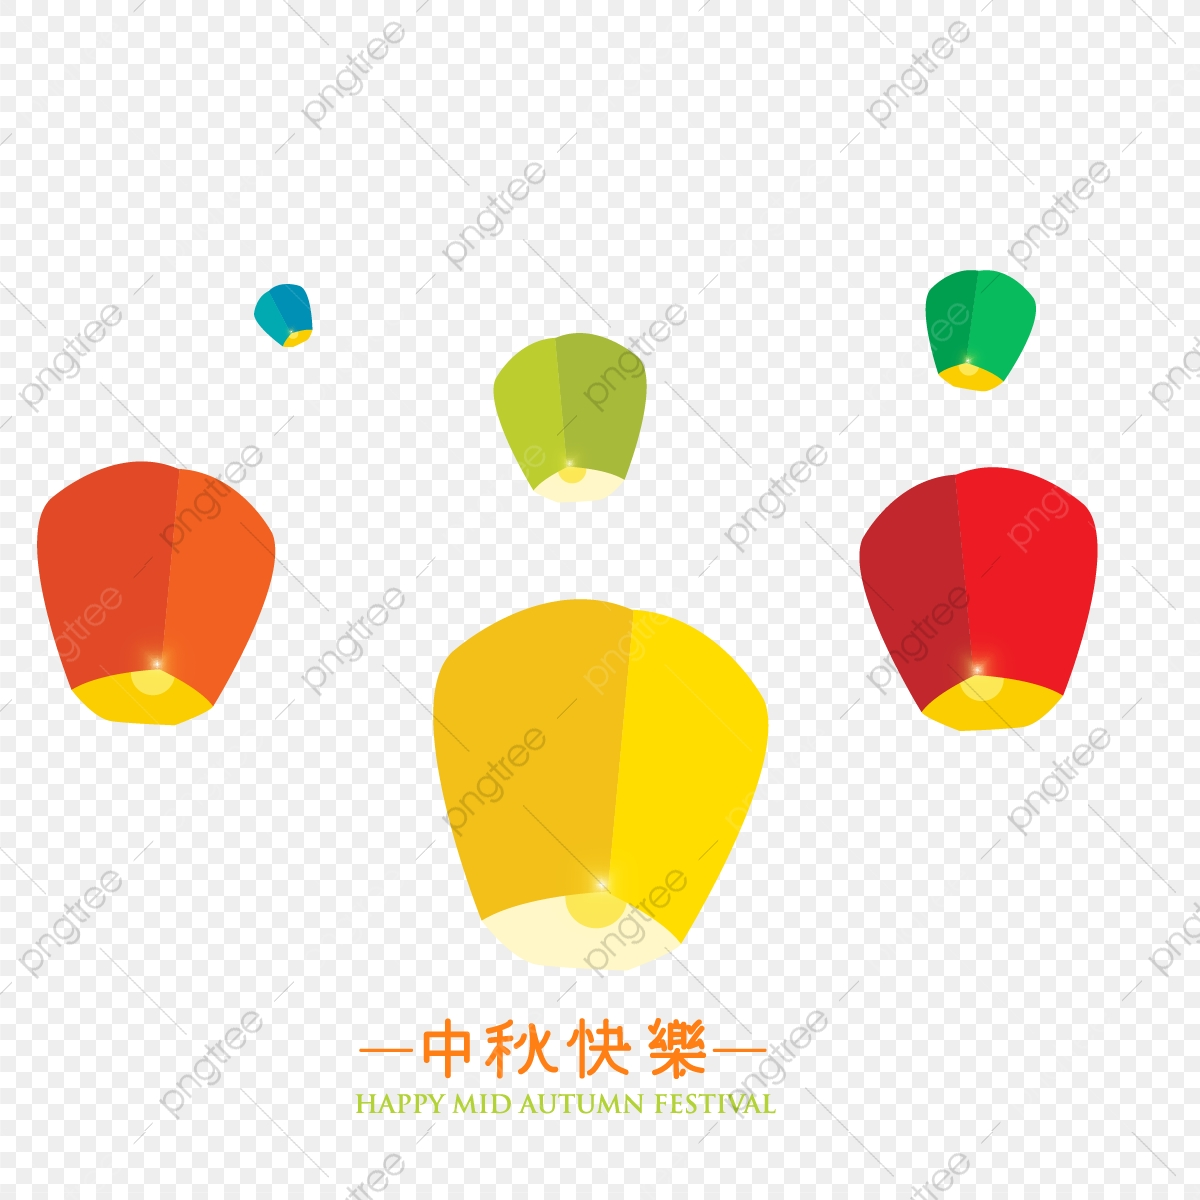 Flying Lantern Background Background Icons Playing Enjoy Png Transparent Clipart Image And Psd File For Free Download